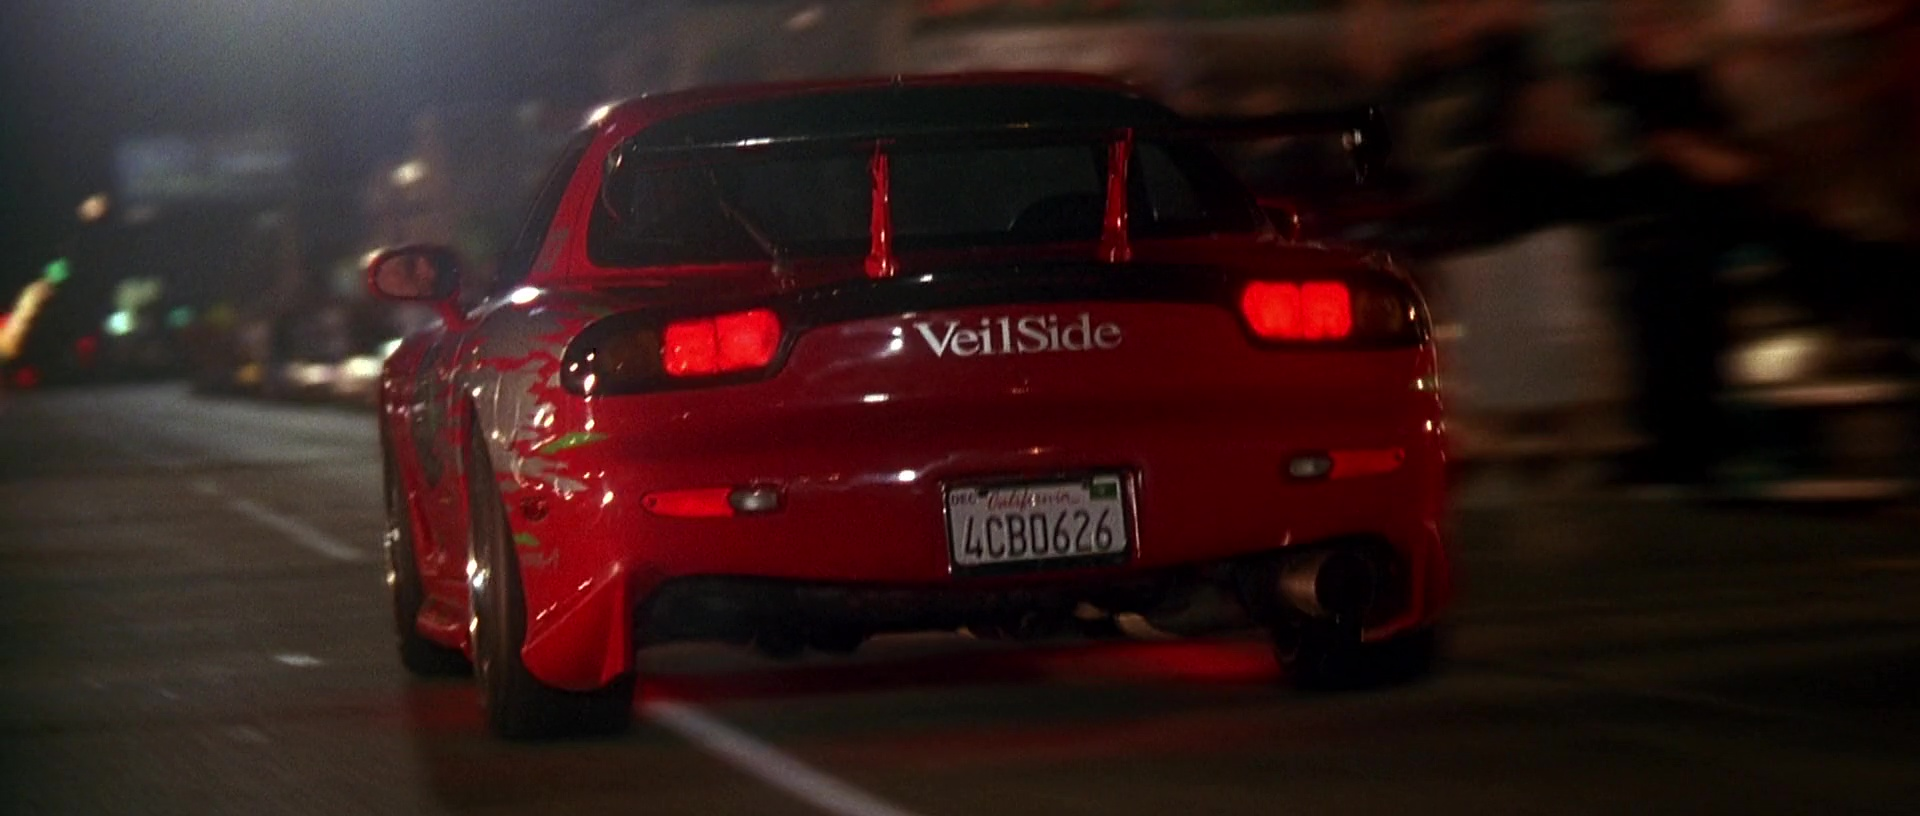 1993 mazda rx-7 | the fast and the furious wiki | fandom powered